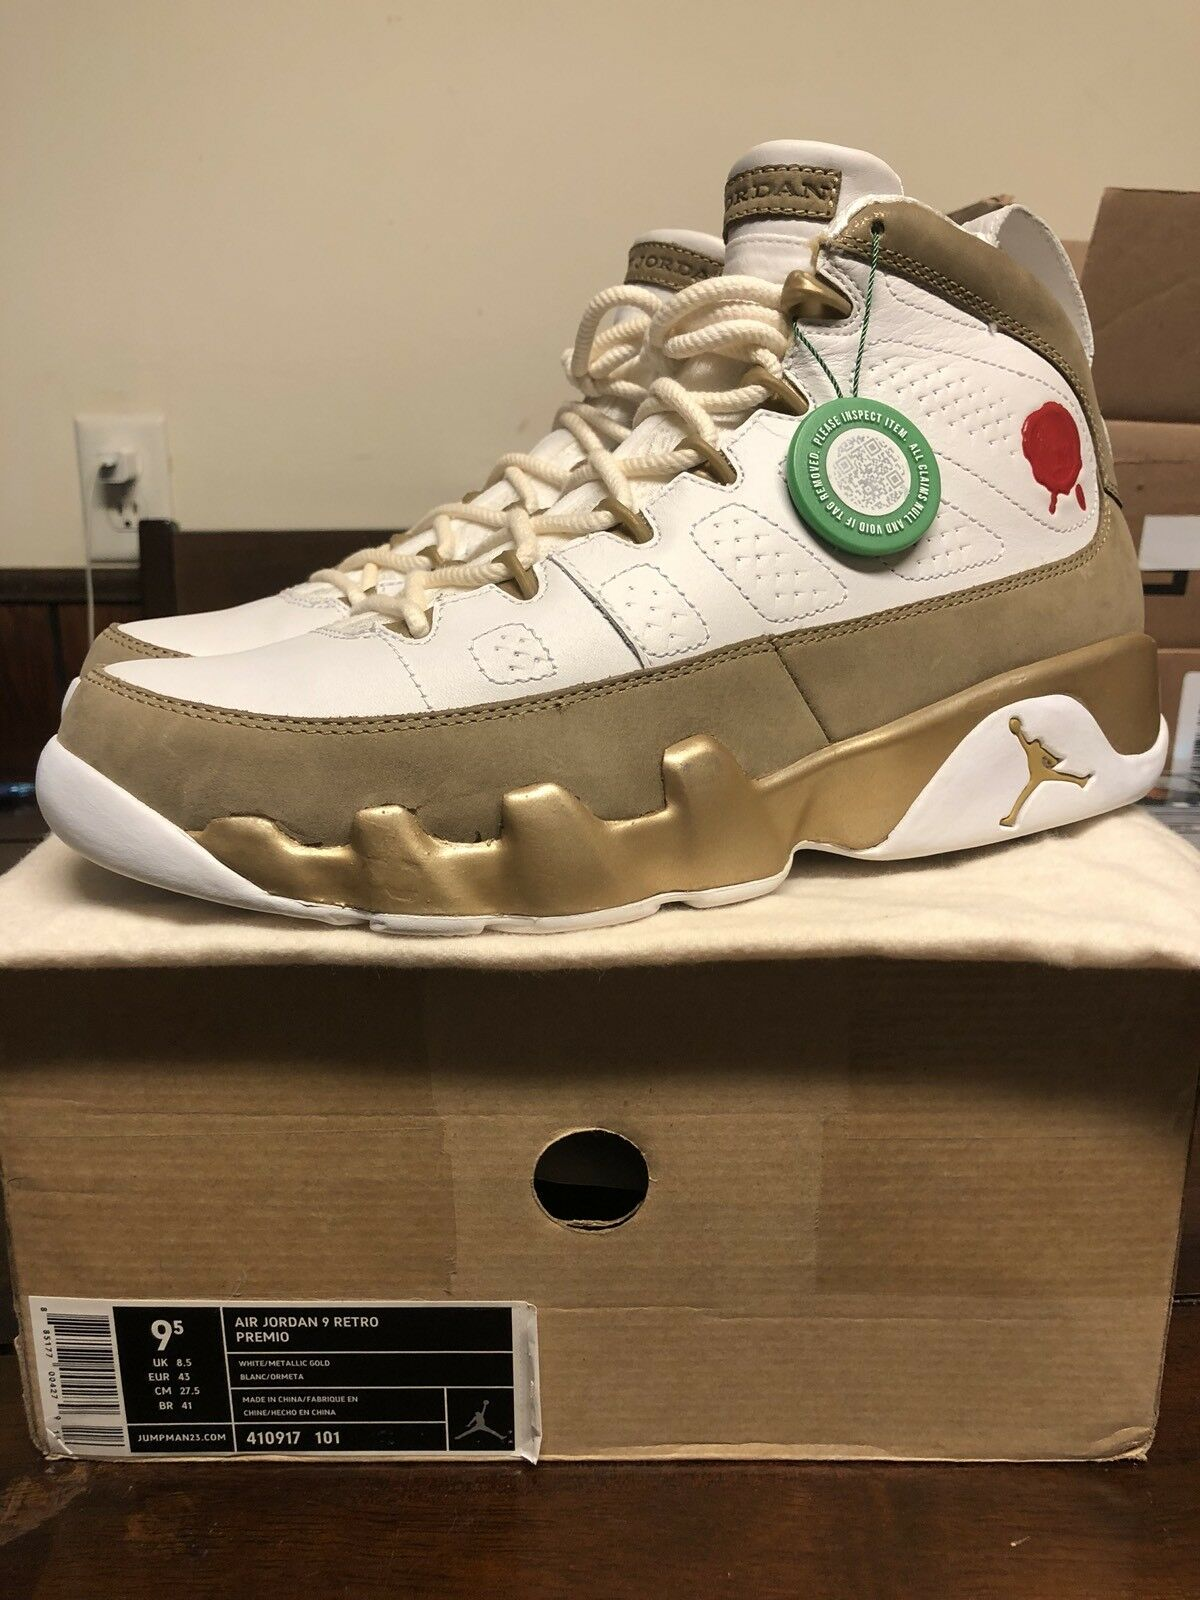 Nike Air Jordan 9 Retro Premio Bin 410917-101 Size 9.5 New 100% Authentic